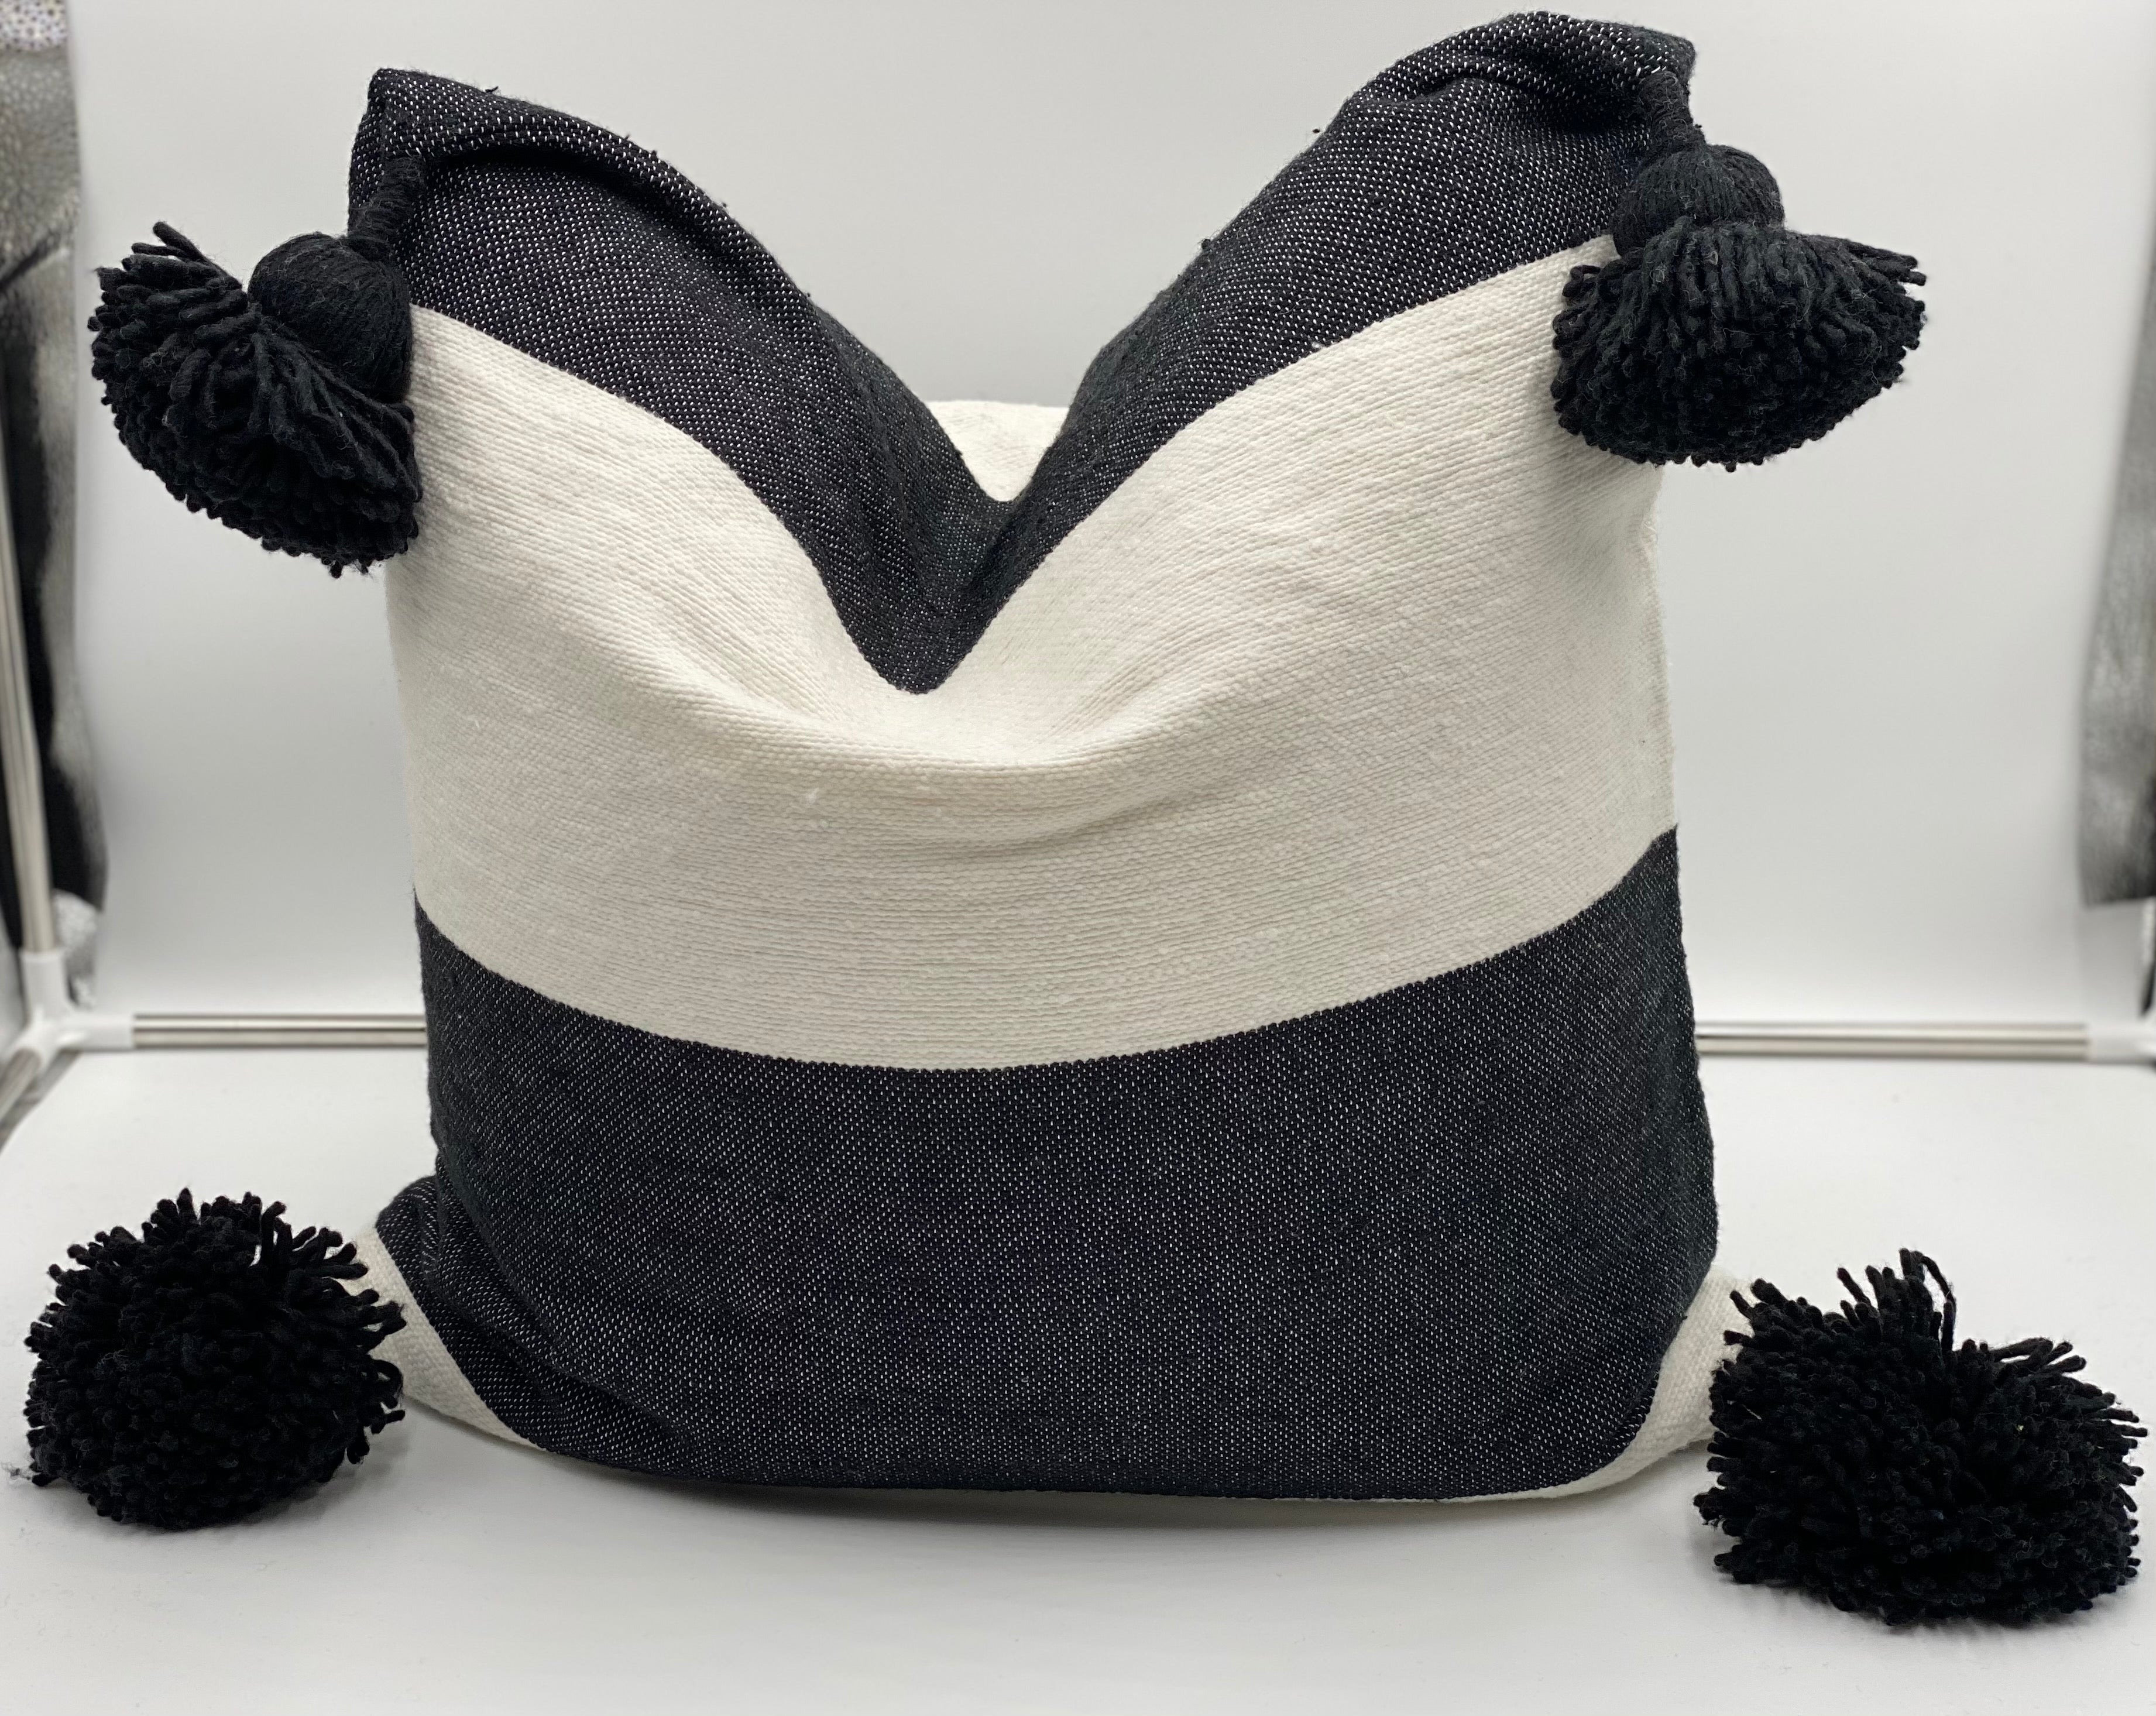 Rahisi - Moroccan Cotton Color Blocked Pom Pom Pillow